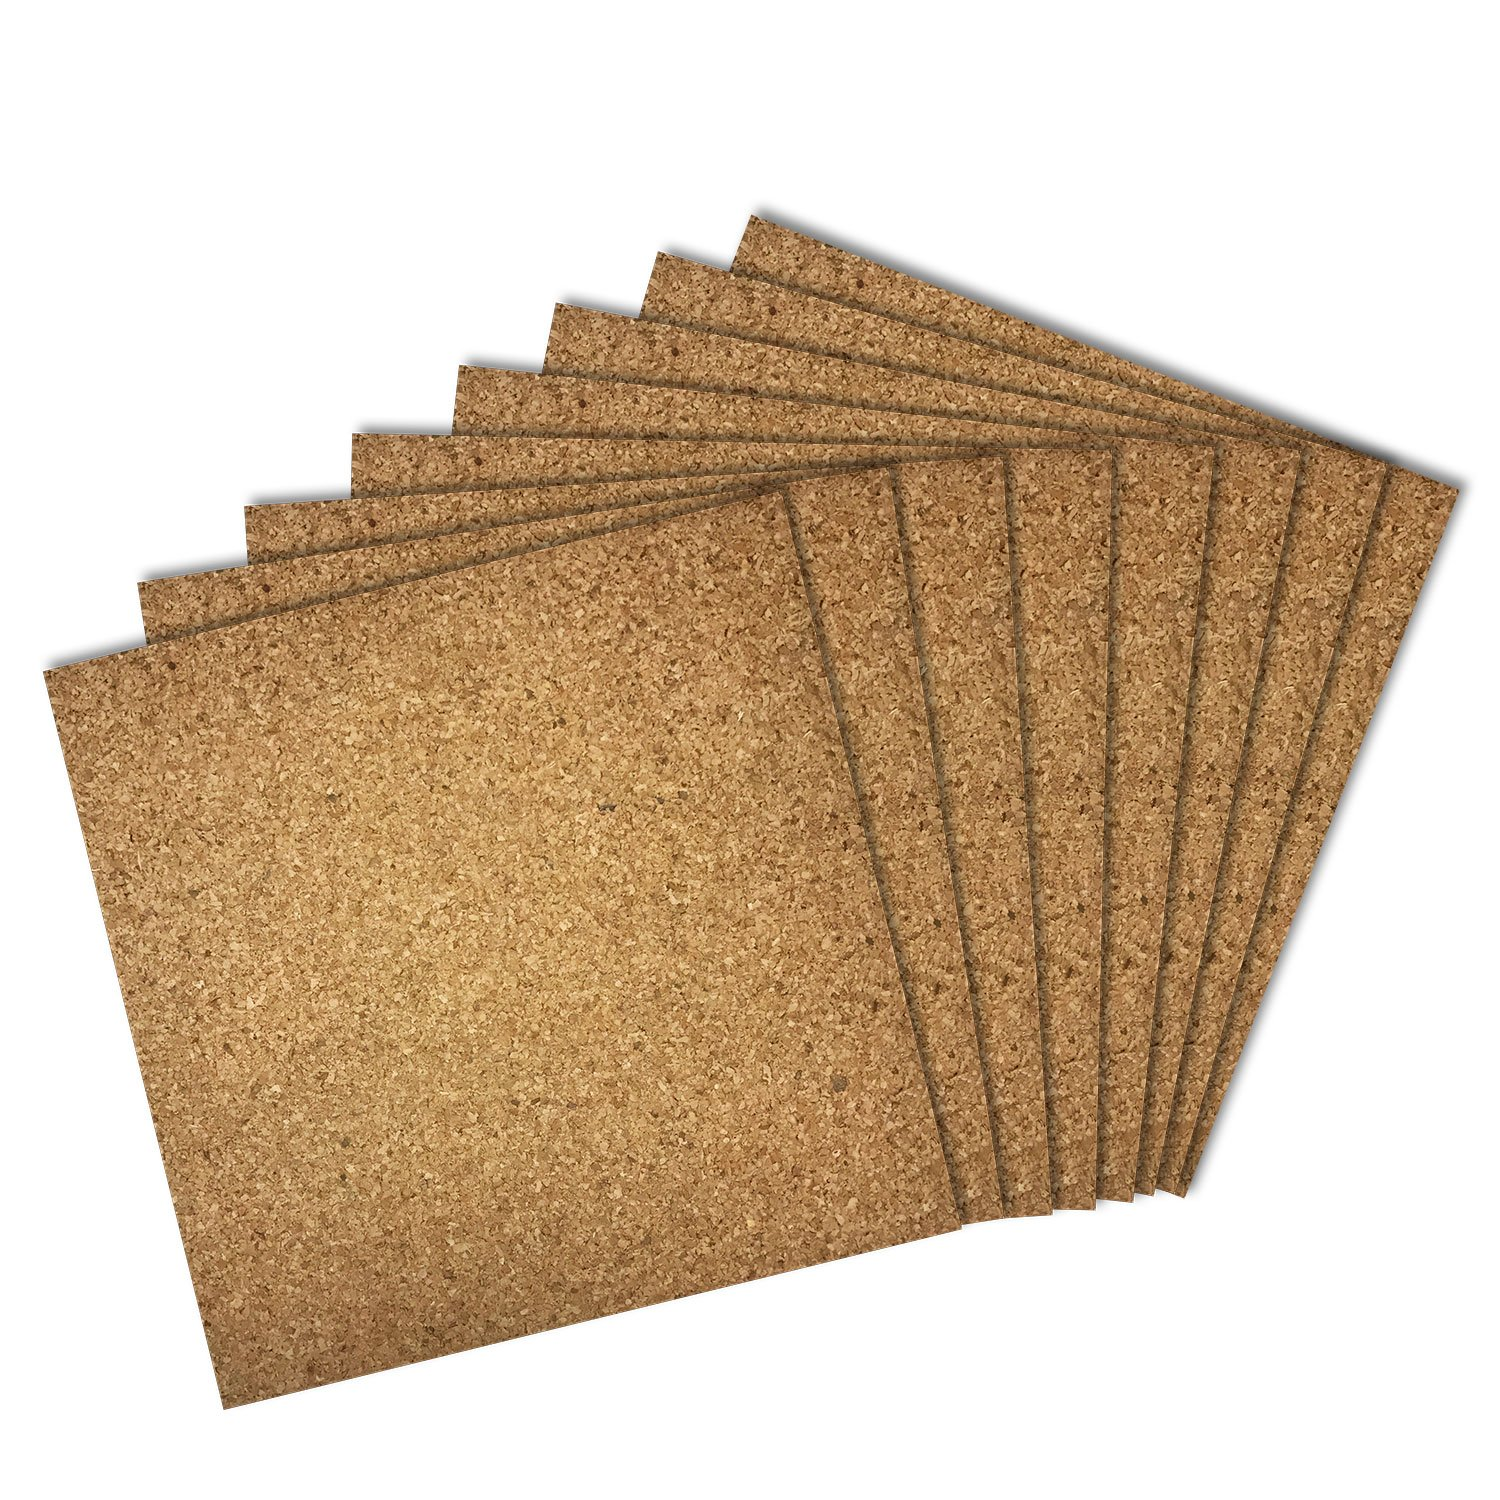 Thornton's Office Supplies Cork Bulletin Board Tiles, Natural, 12 Inch x 12 Inch, Frameless (24 Pack)